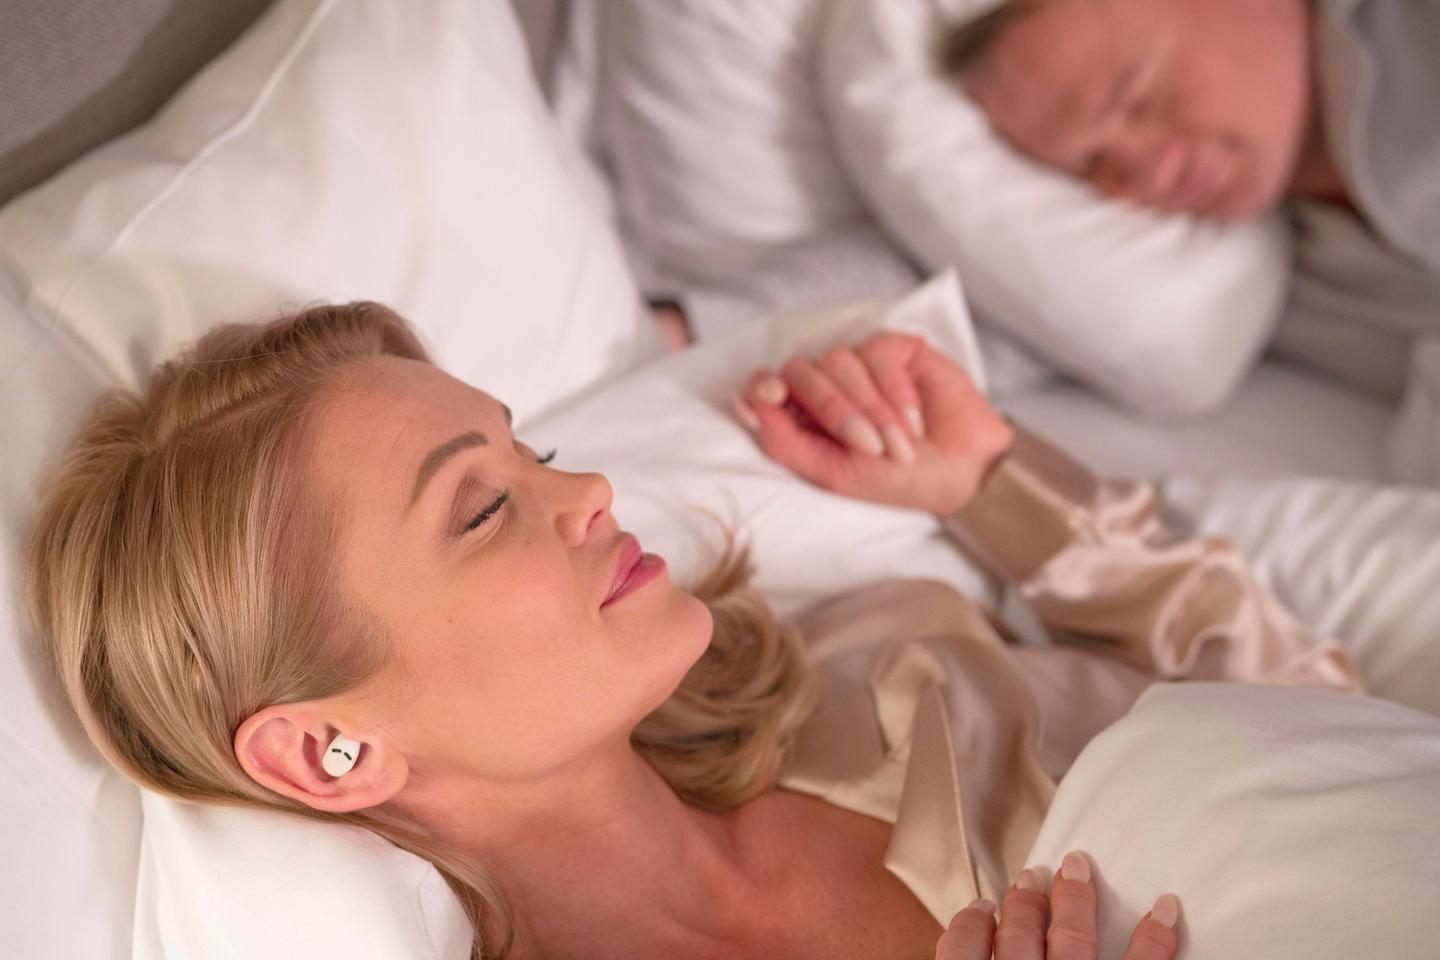 Fitting into the folds of your ear, QuietOn 3 earbuds are small enough to side-sleep with